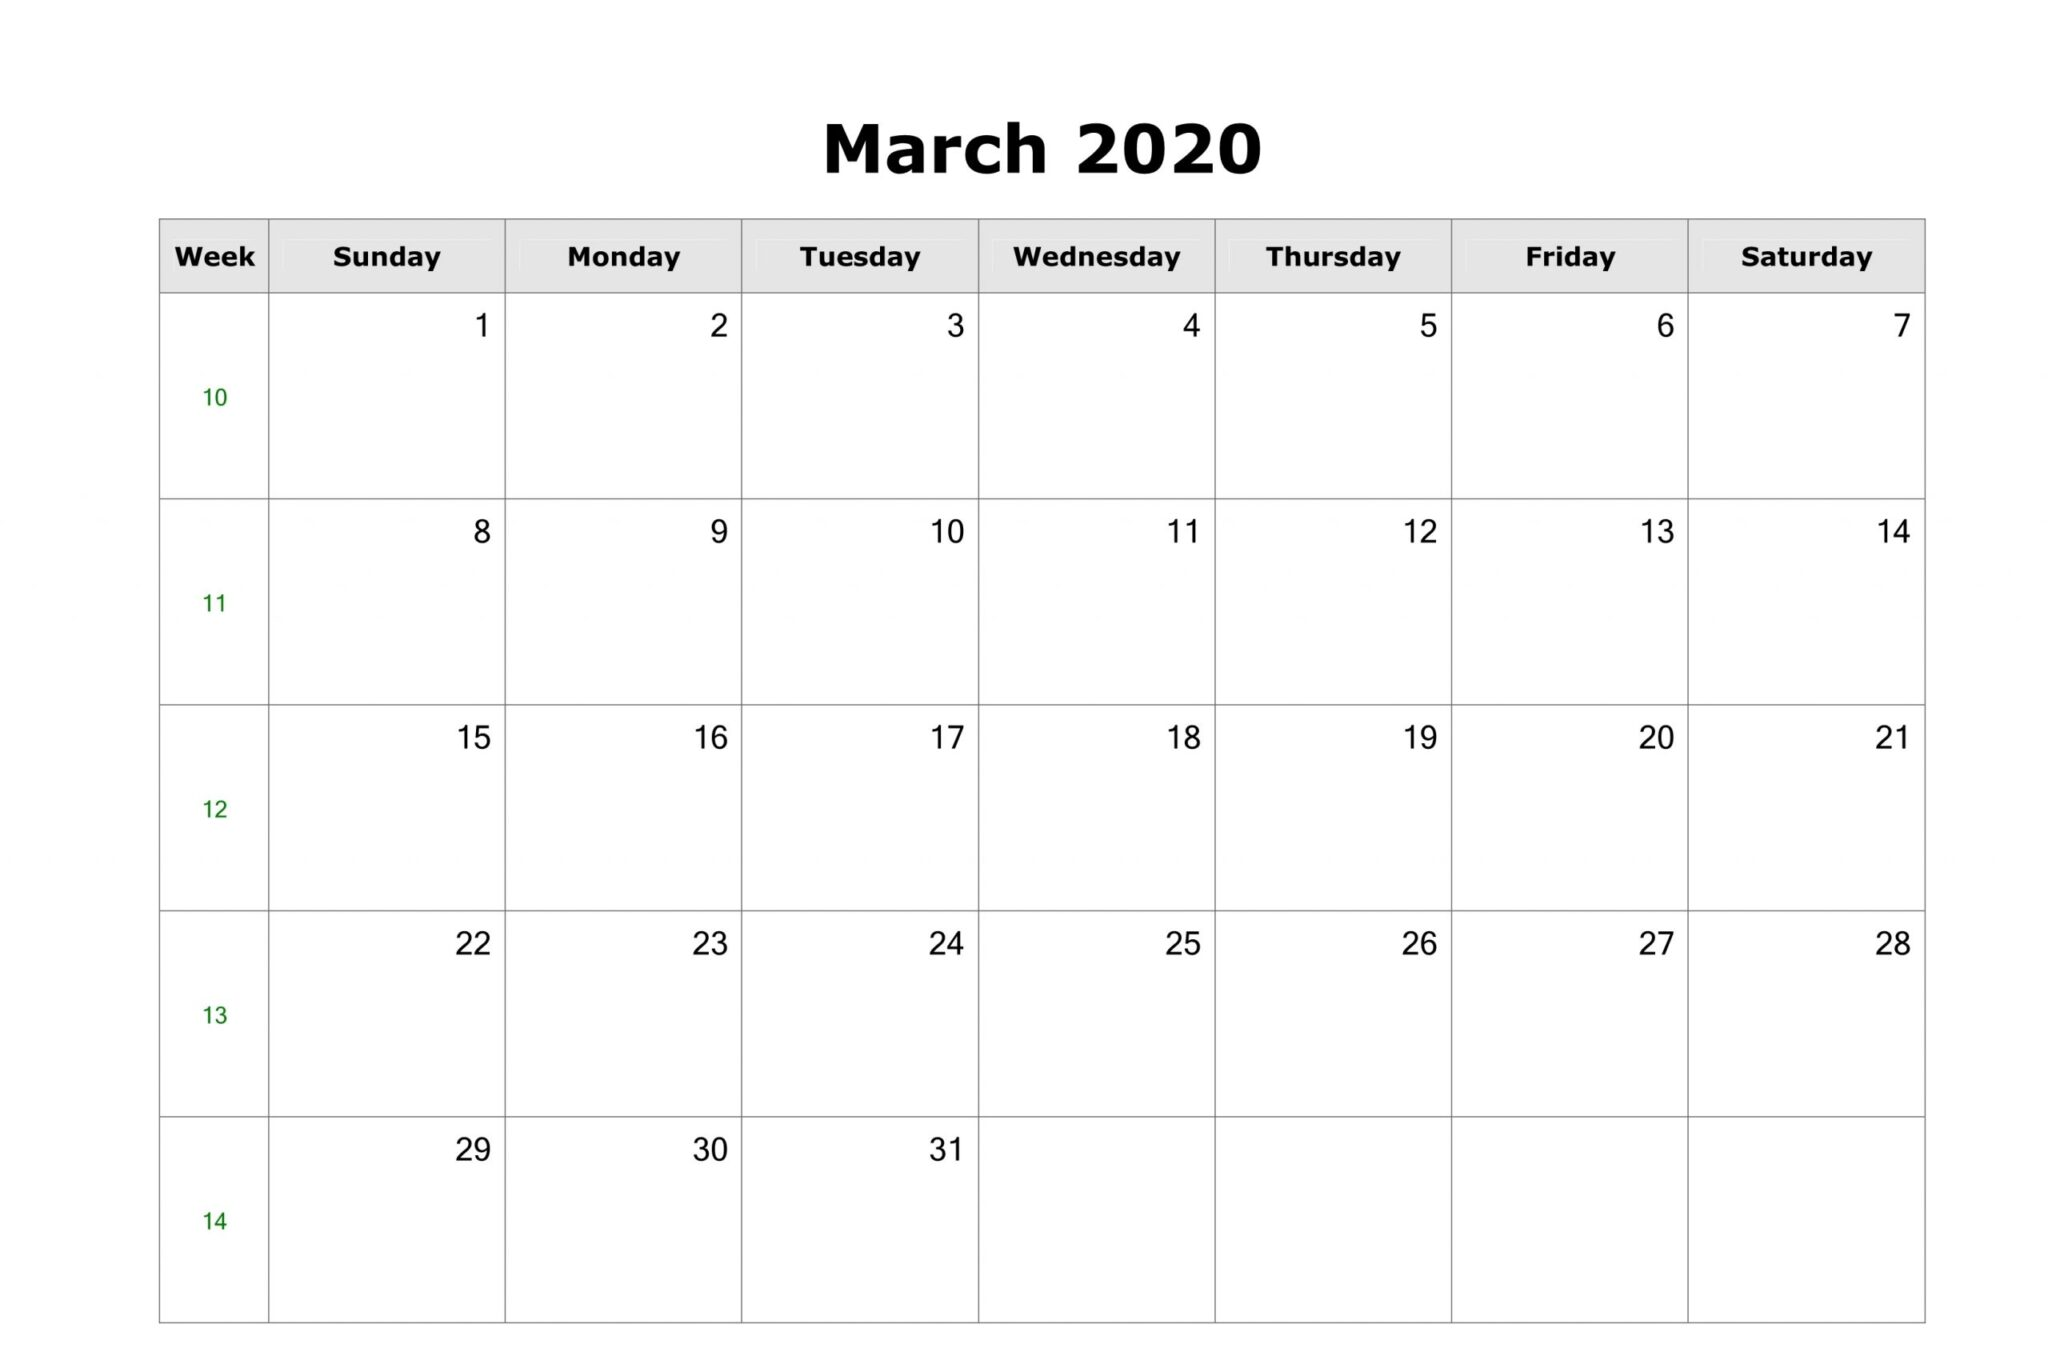 Monthly Calendar For March 2020 Template